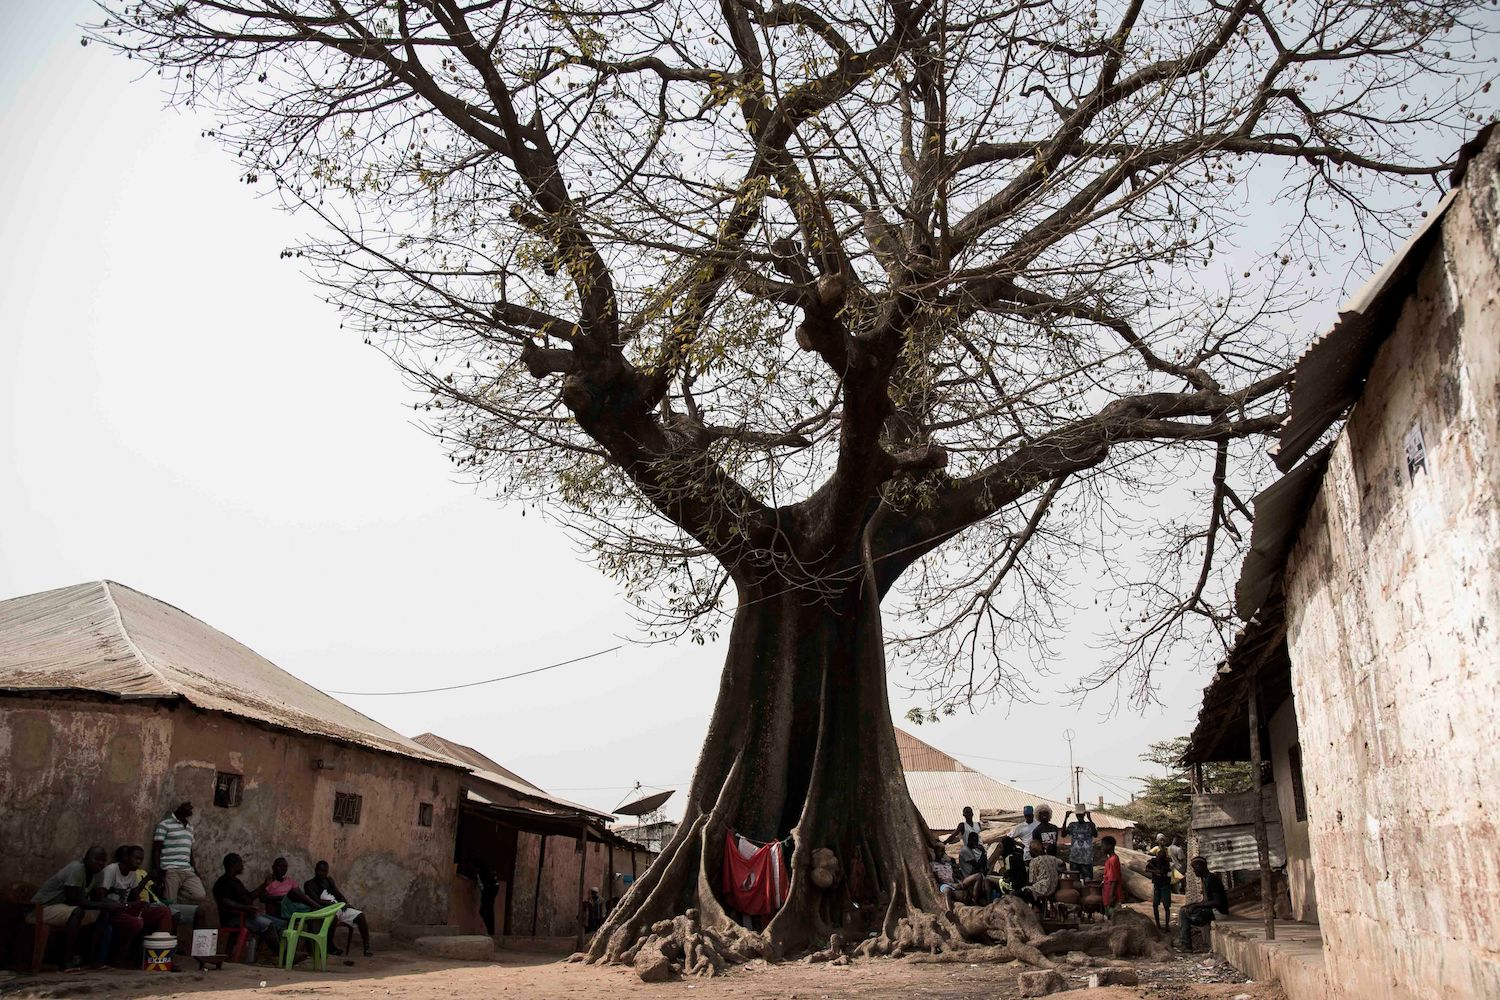 TOPSHOT - People shelter from the sun under a Baobab tree in the Mindara neighbourhood in Bissau on Mardi Gras on February 13, 2018.  / AFP PHOTO / Xaume Olleros        (Photo credit should read XAUME OLLEROS/AFP/Getty Images)